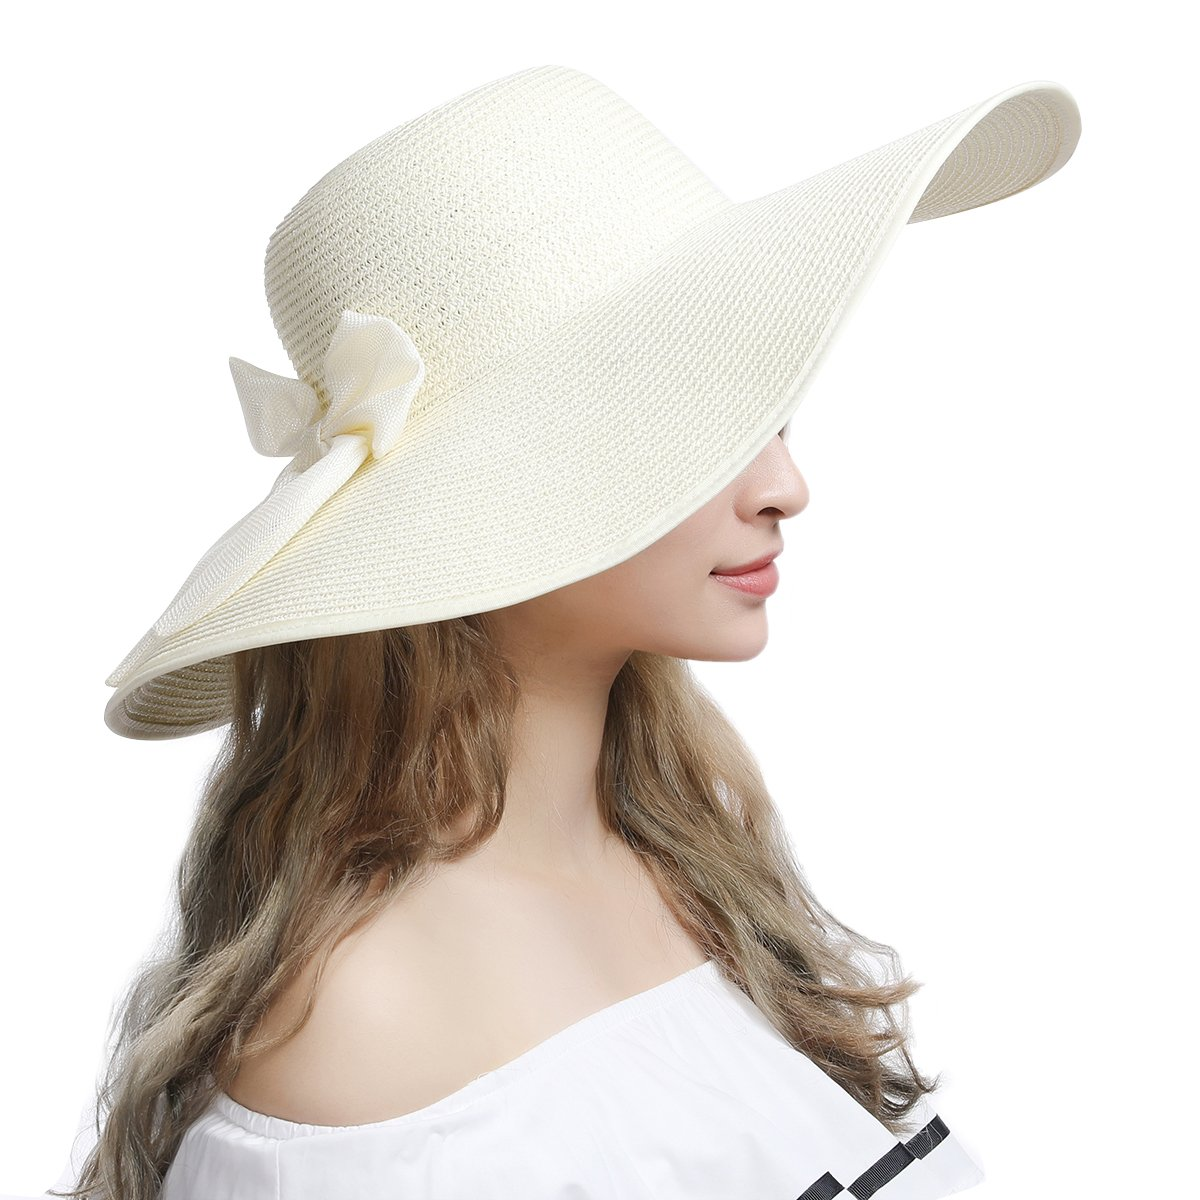 24a5d5e4e6301 Womens Sun Hat Foldable Floppy Travel Packable UV Summer Beach Straw Hats  UPF50 (Beige) at Amazon Women s Clothing store